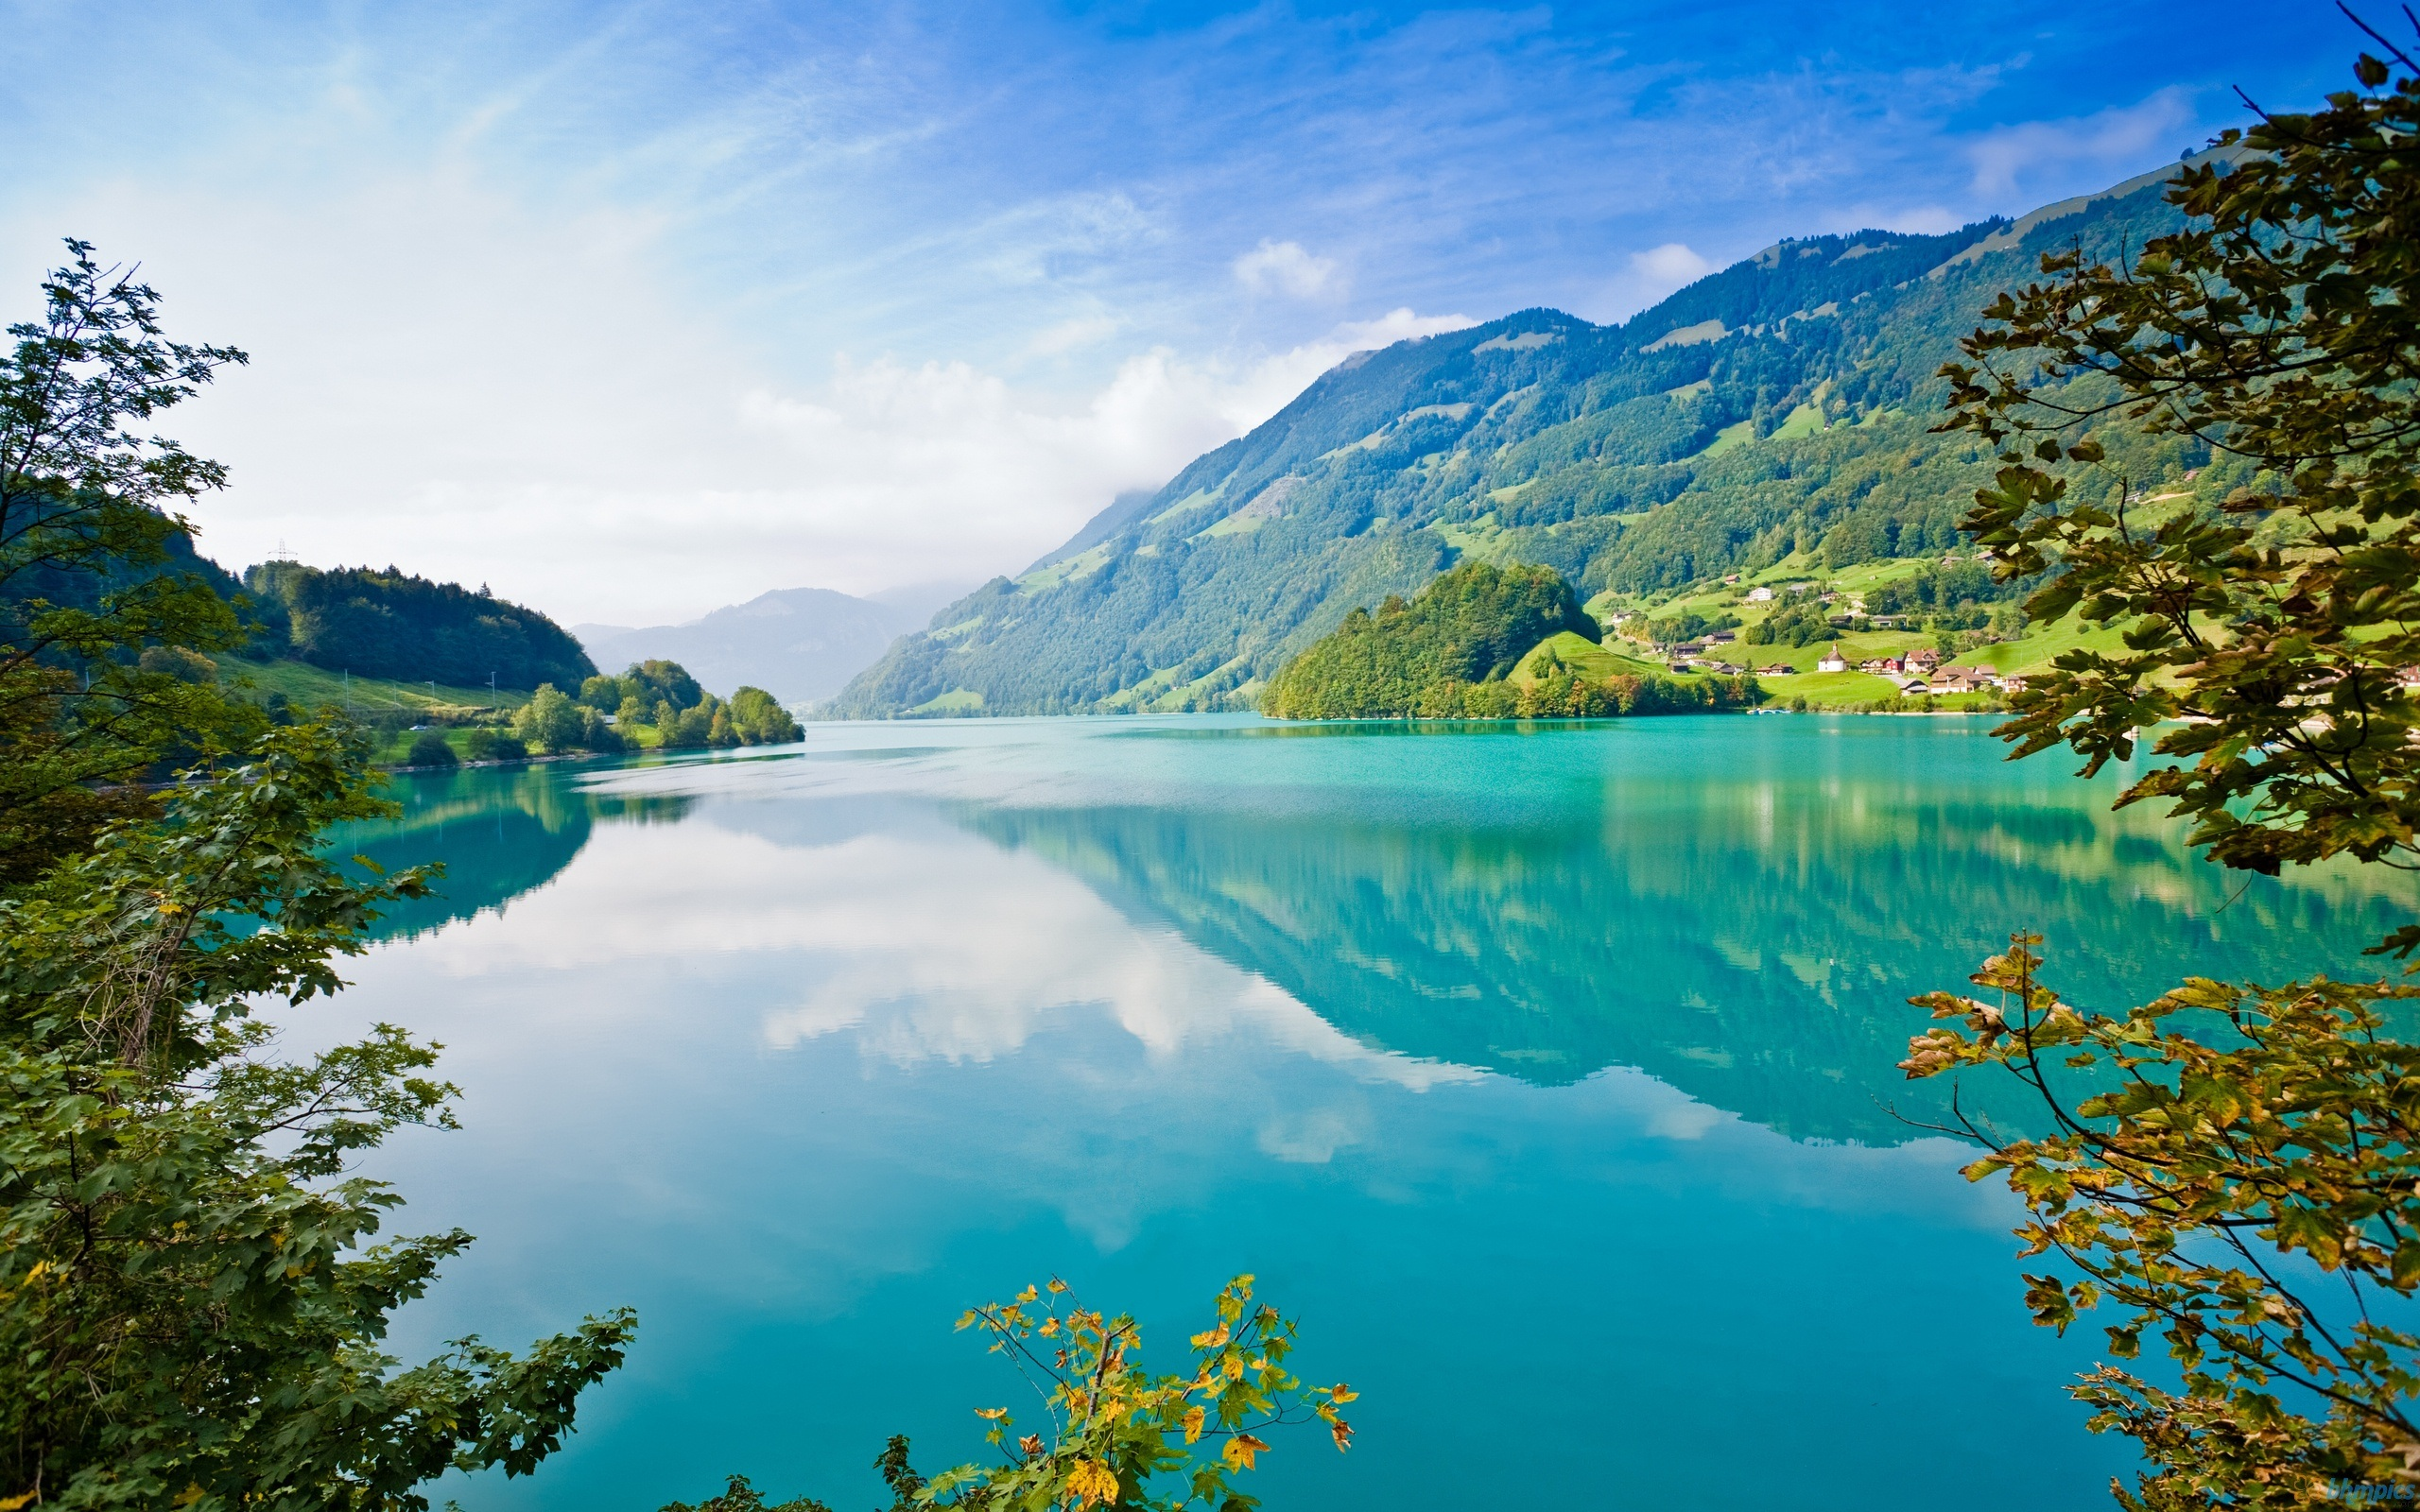 Wallpaper Beautiful Blue Water Green Nature 2560x1600 Hd Picture Image